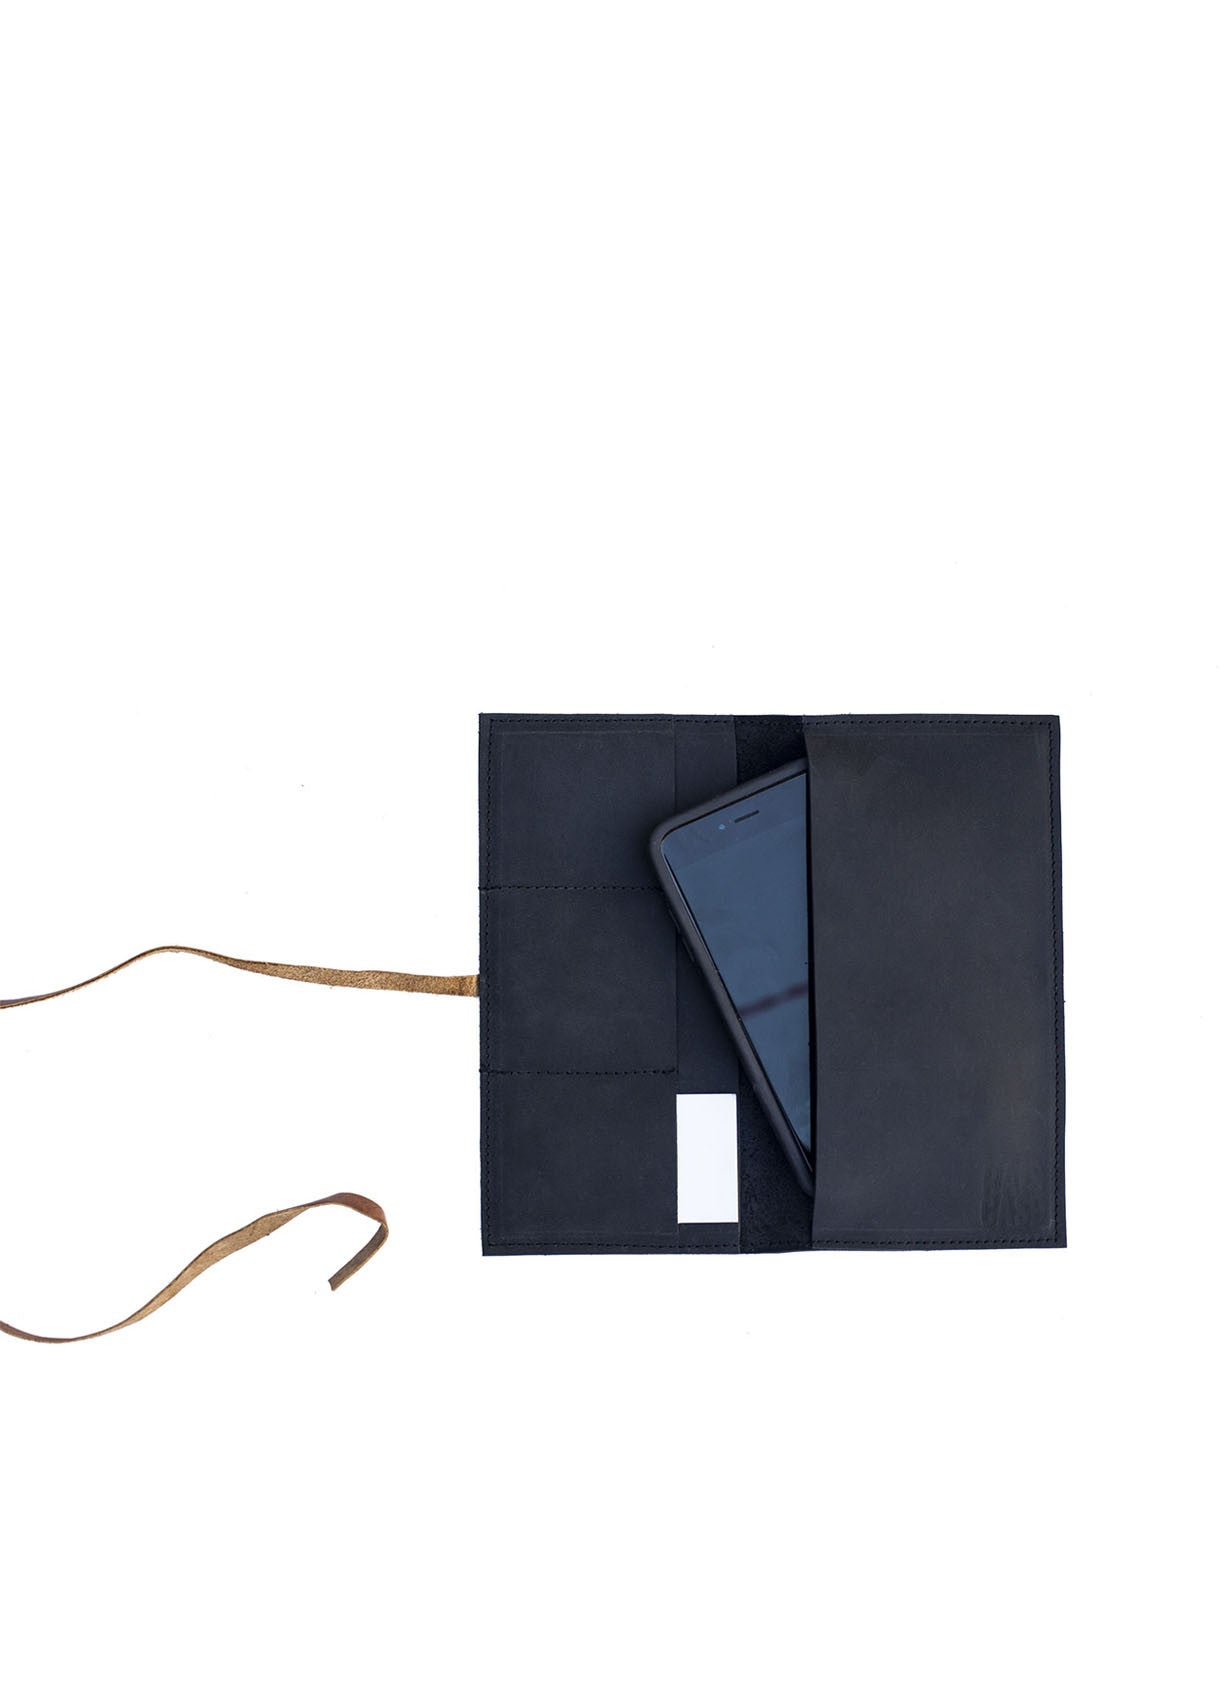 The Shema  Wallet - Black and Honey - Rais Case - Image 1